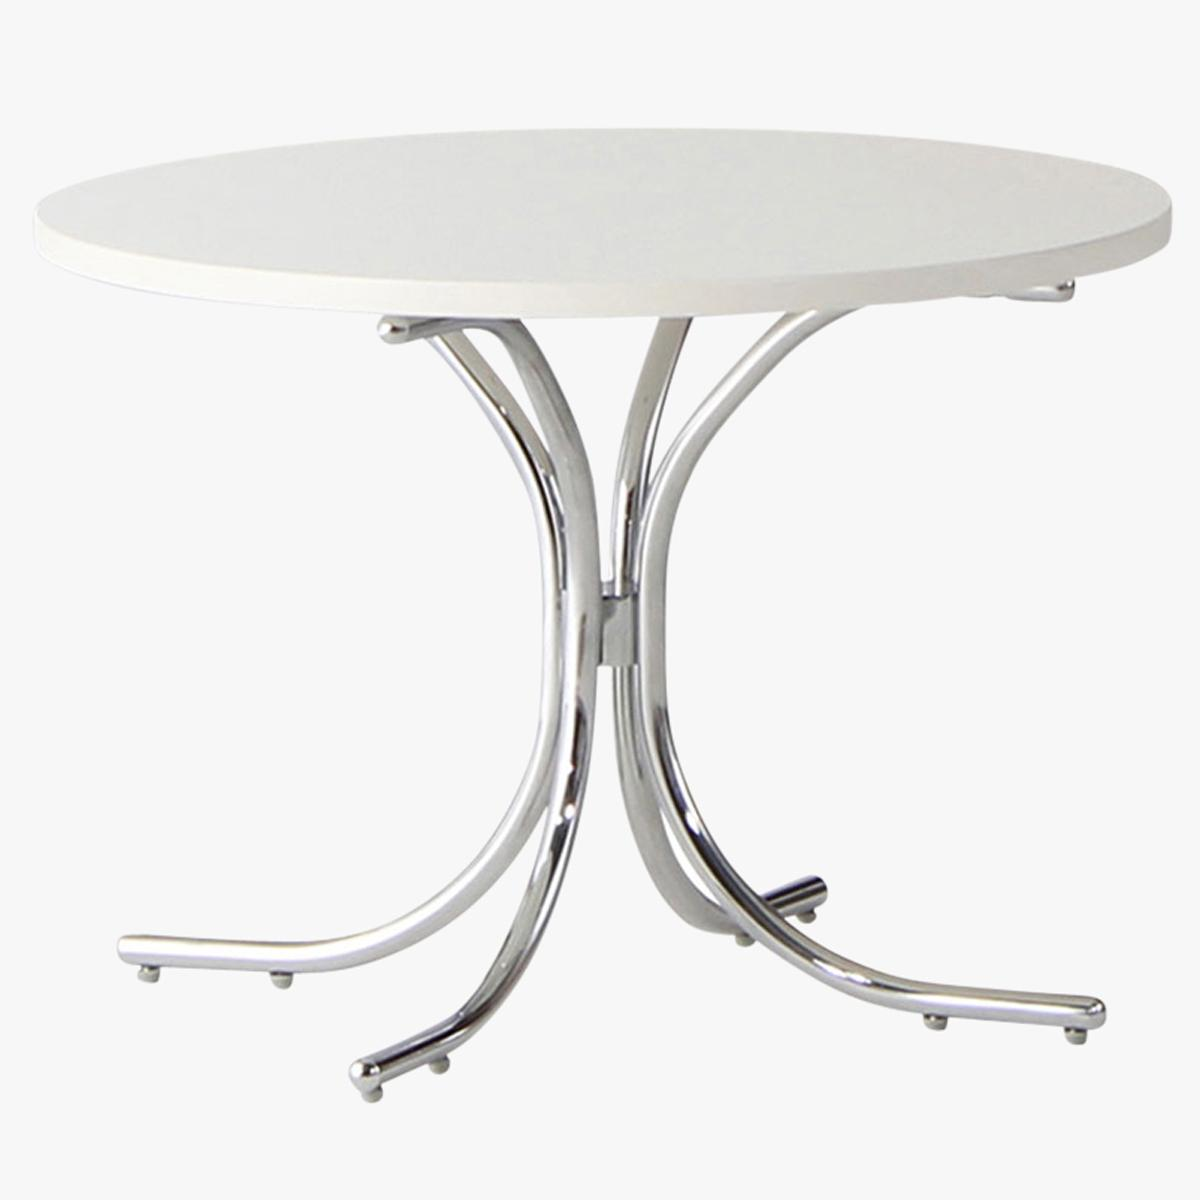 Modular Table (White) - LR